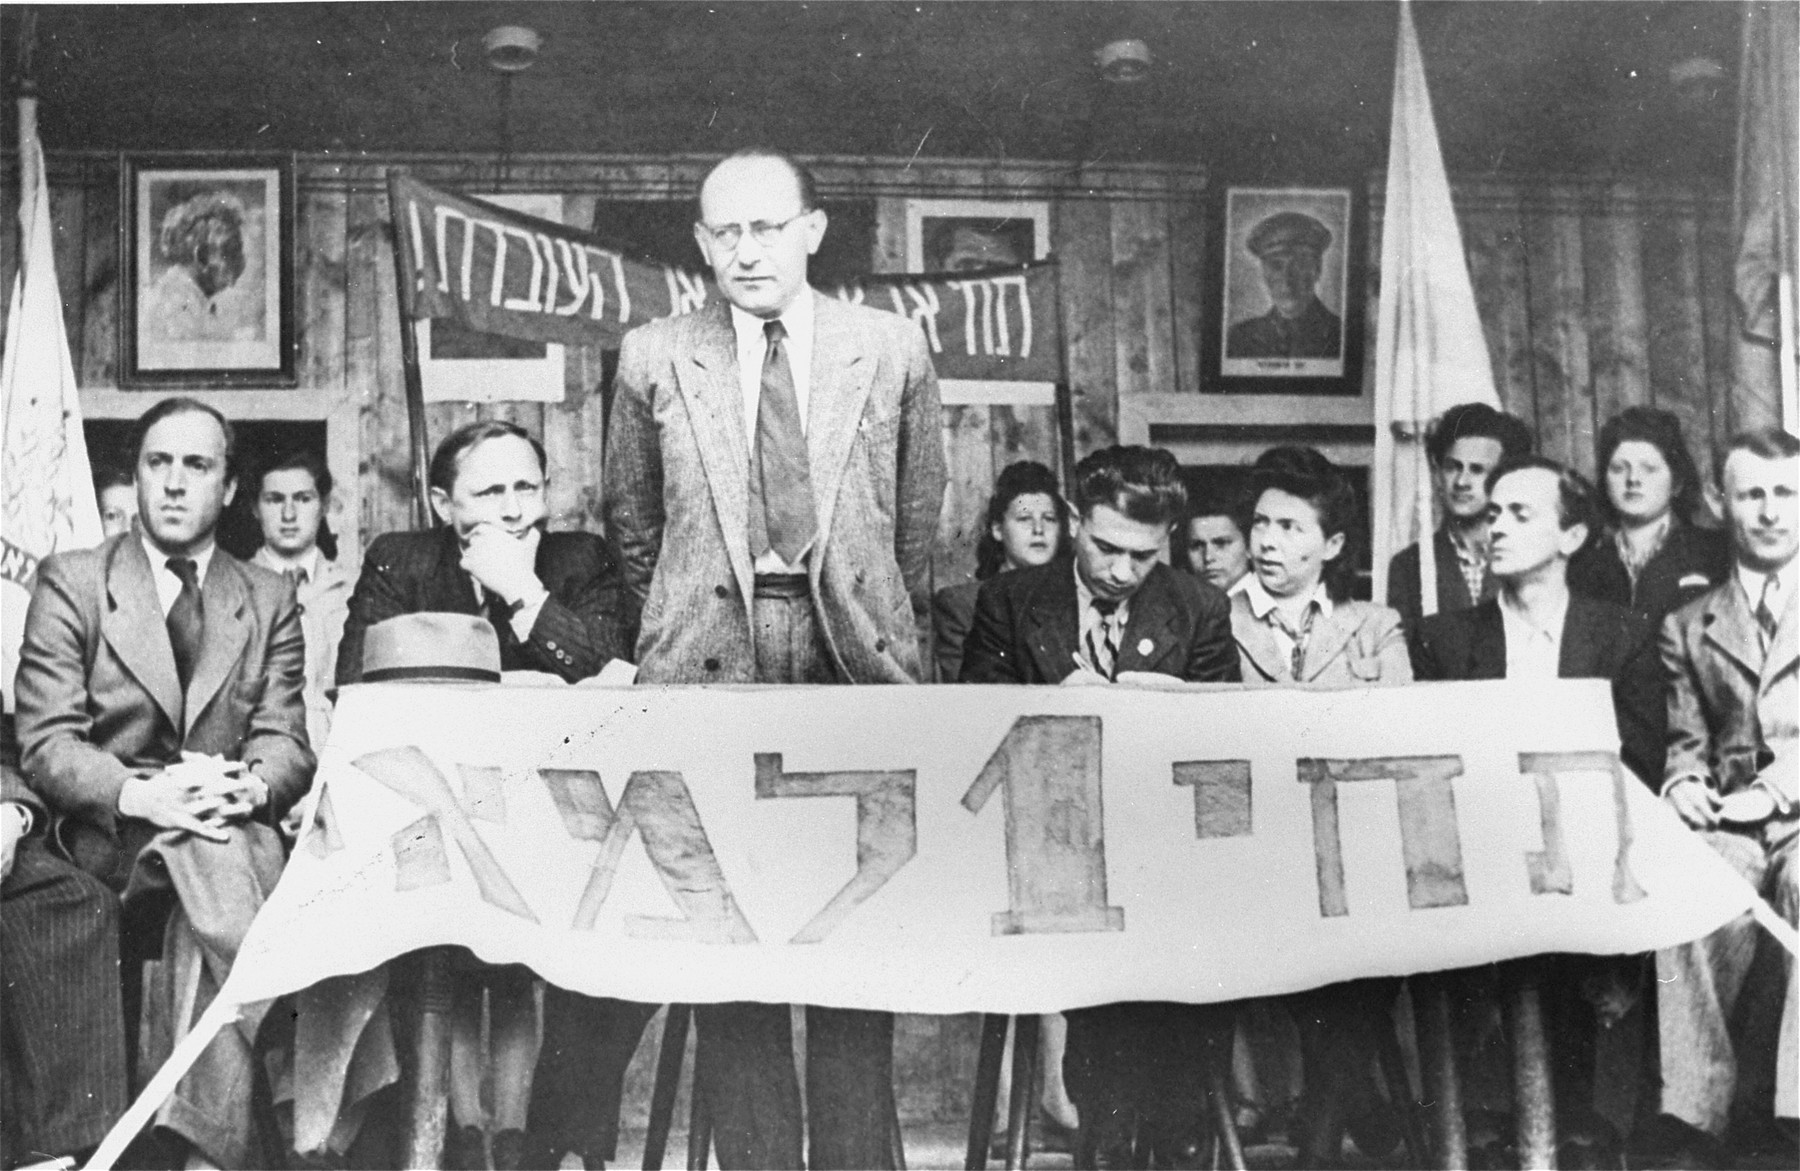 Chaim (Hoffman) Yahil, representative of the Jewish Agency in Germany, addresses an outdoor meeting of Jewish DPs at an official May Day celebration at the Neu Freimann displaced persons camp.